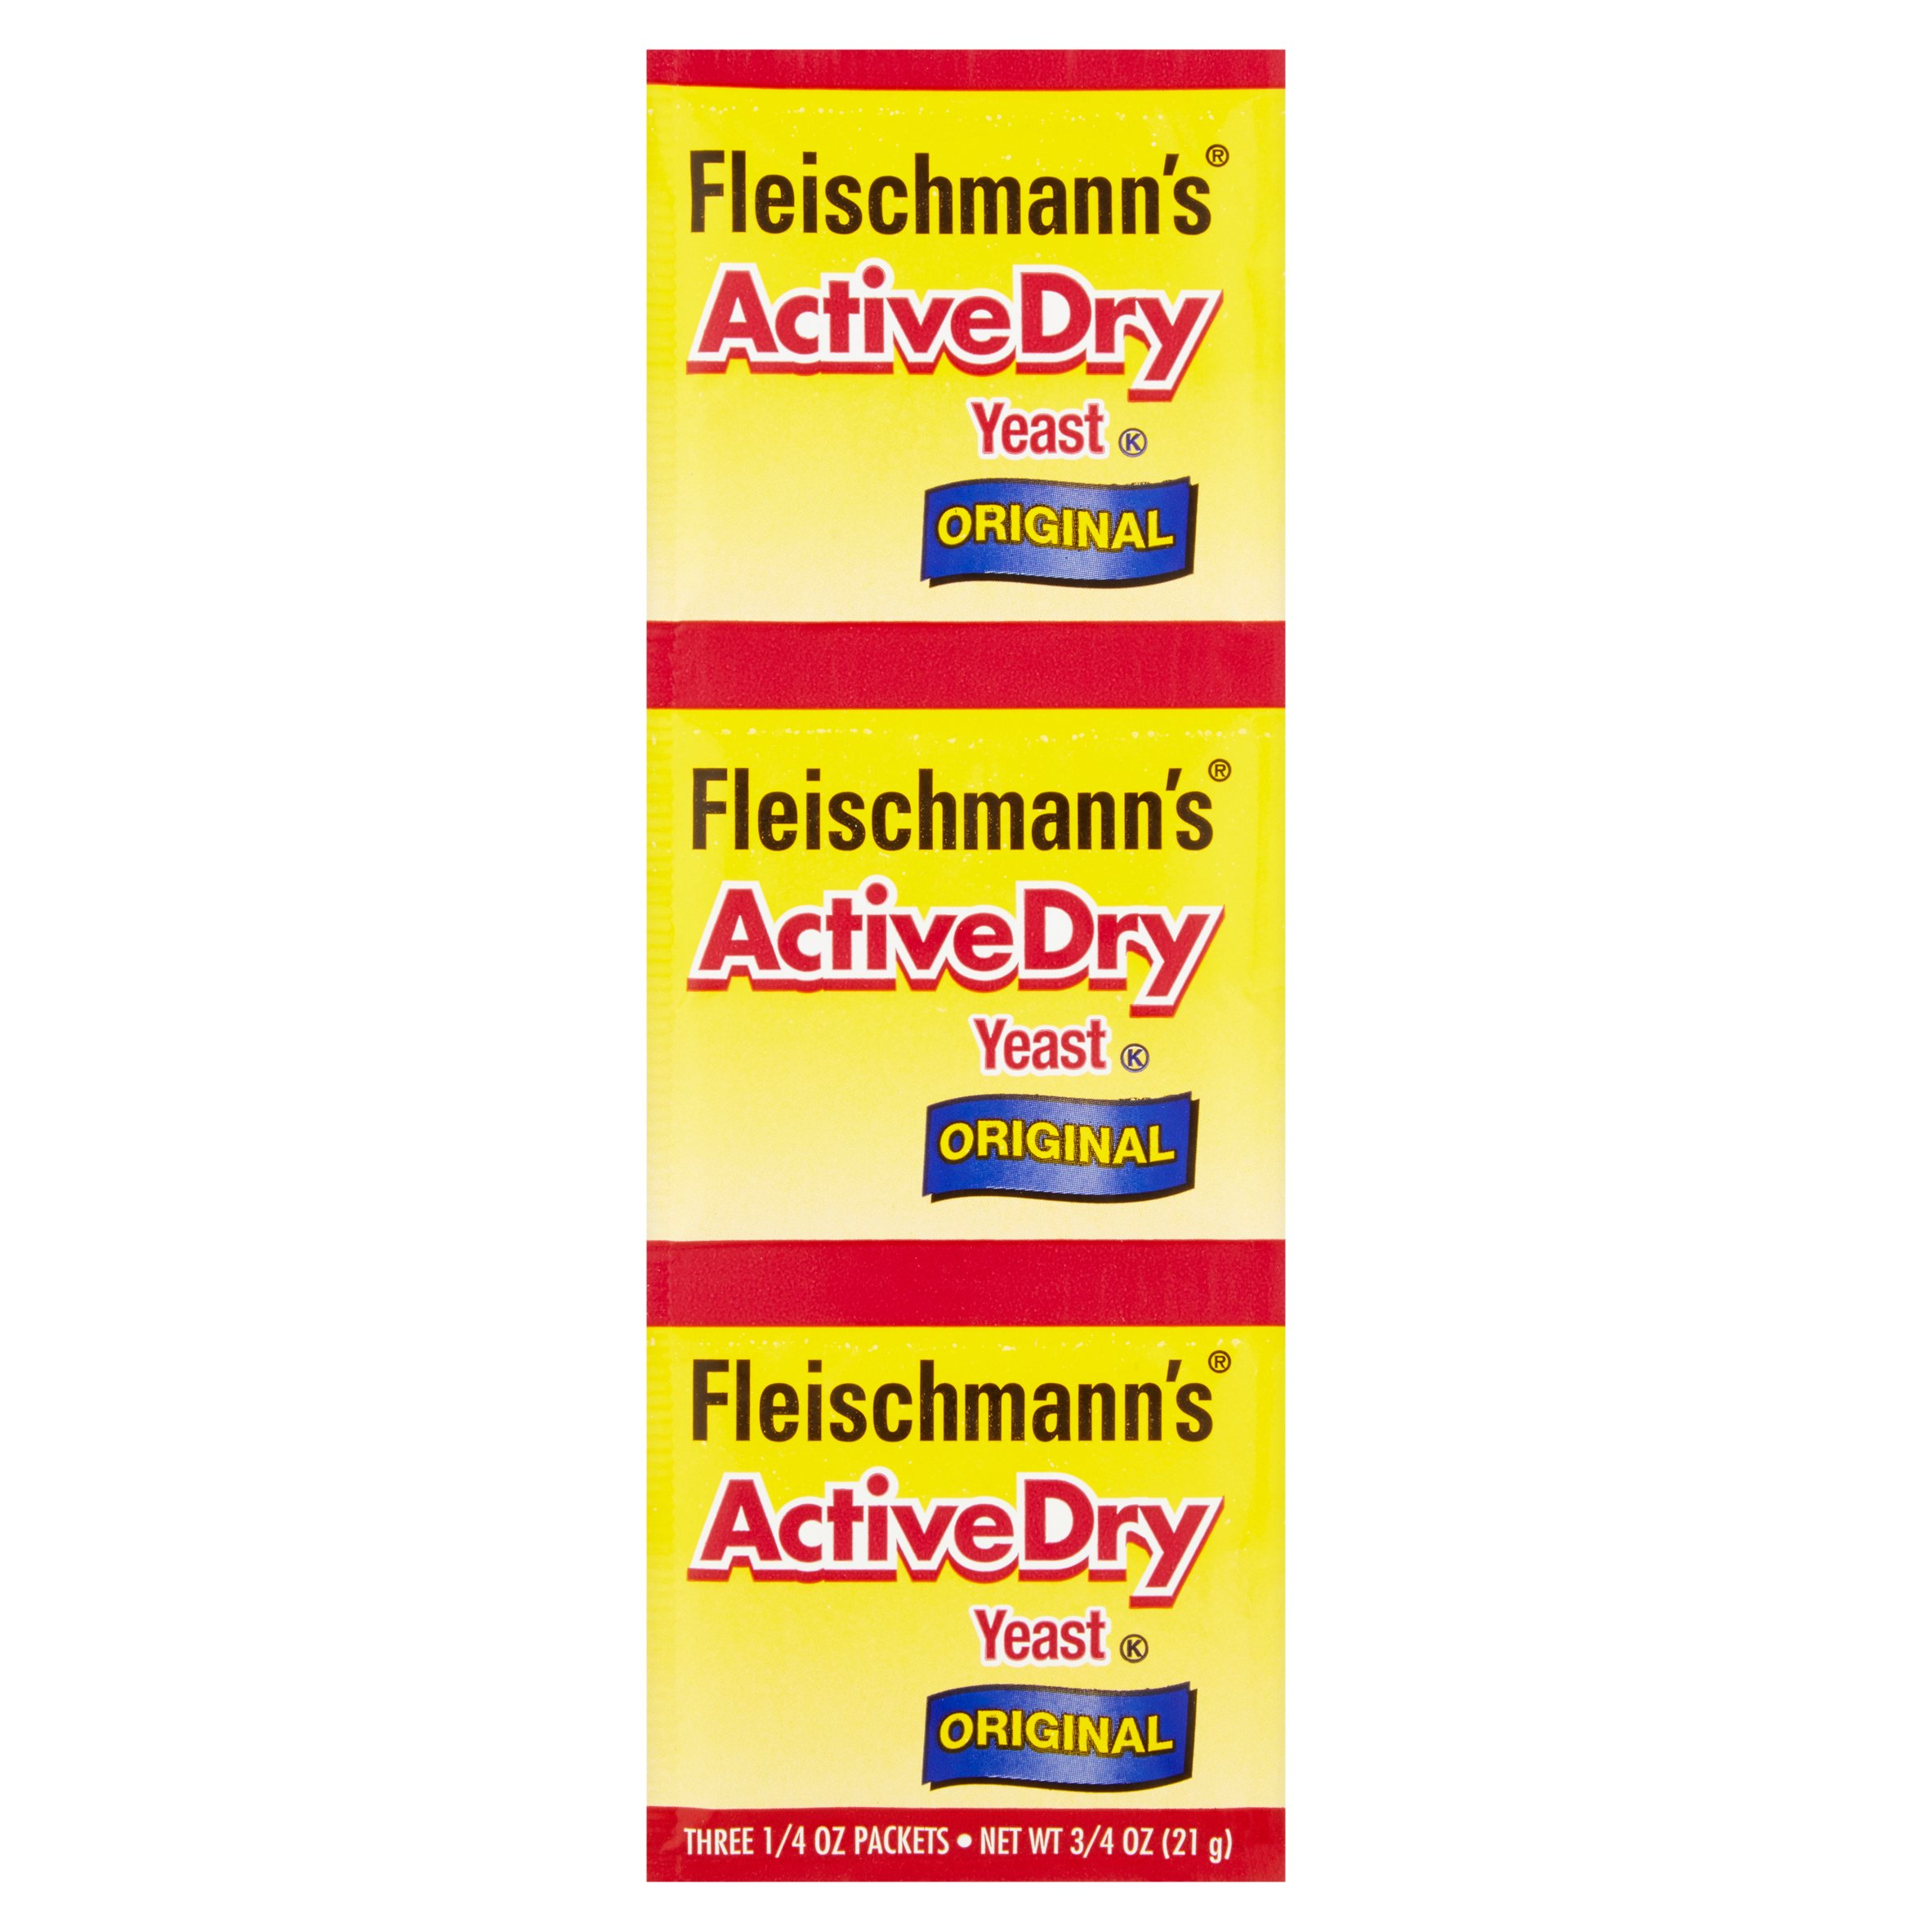 Fleischmann's ActiveDry Yeast Original 3 CT by ACH Food Companies, Inc.